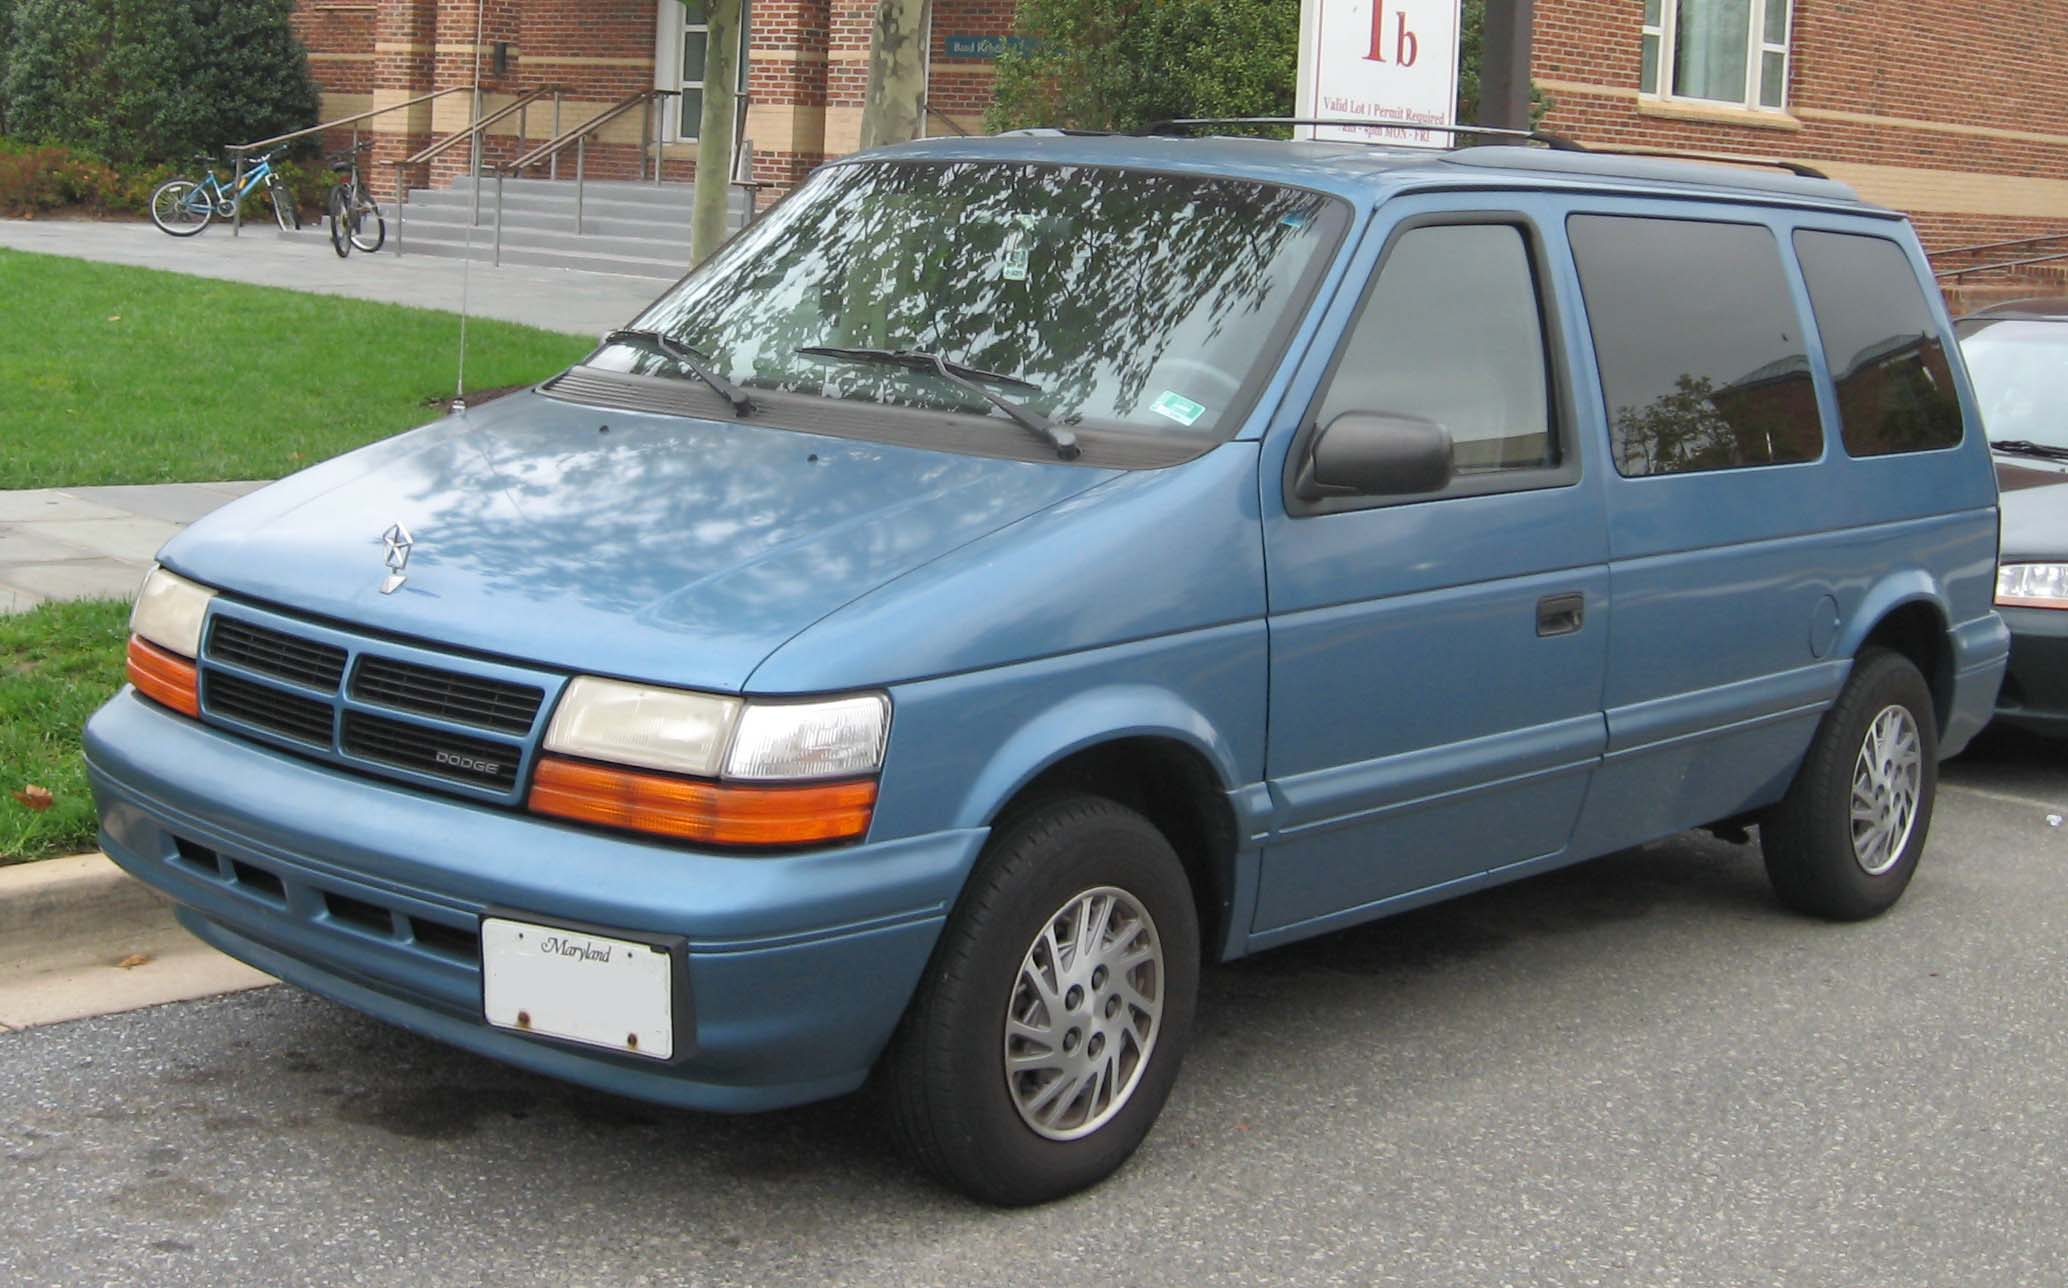 1991 plymouth voyager blue with File 2nd Dodge Caravan on 1996 Jeep Grand Cherokee Radio Wiring Diagram besides autorepairinstructions moreover File 2nd Dodge Caravan as well 2000 Jaguar S Type How To Fill New Transmission With Fluid in addition Lincoln Ls Accessories.